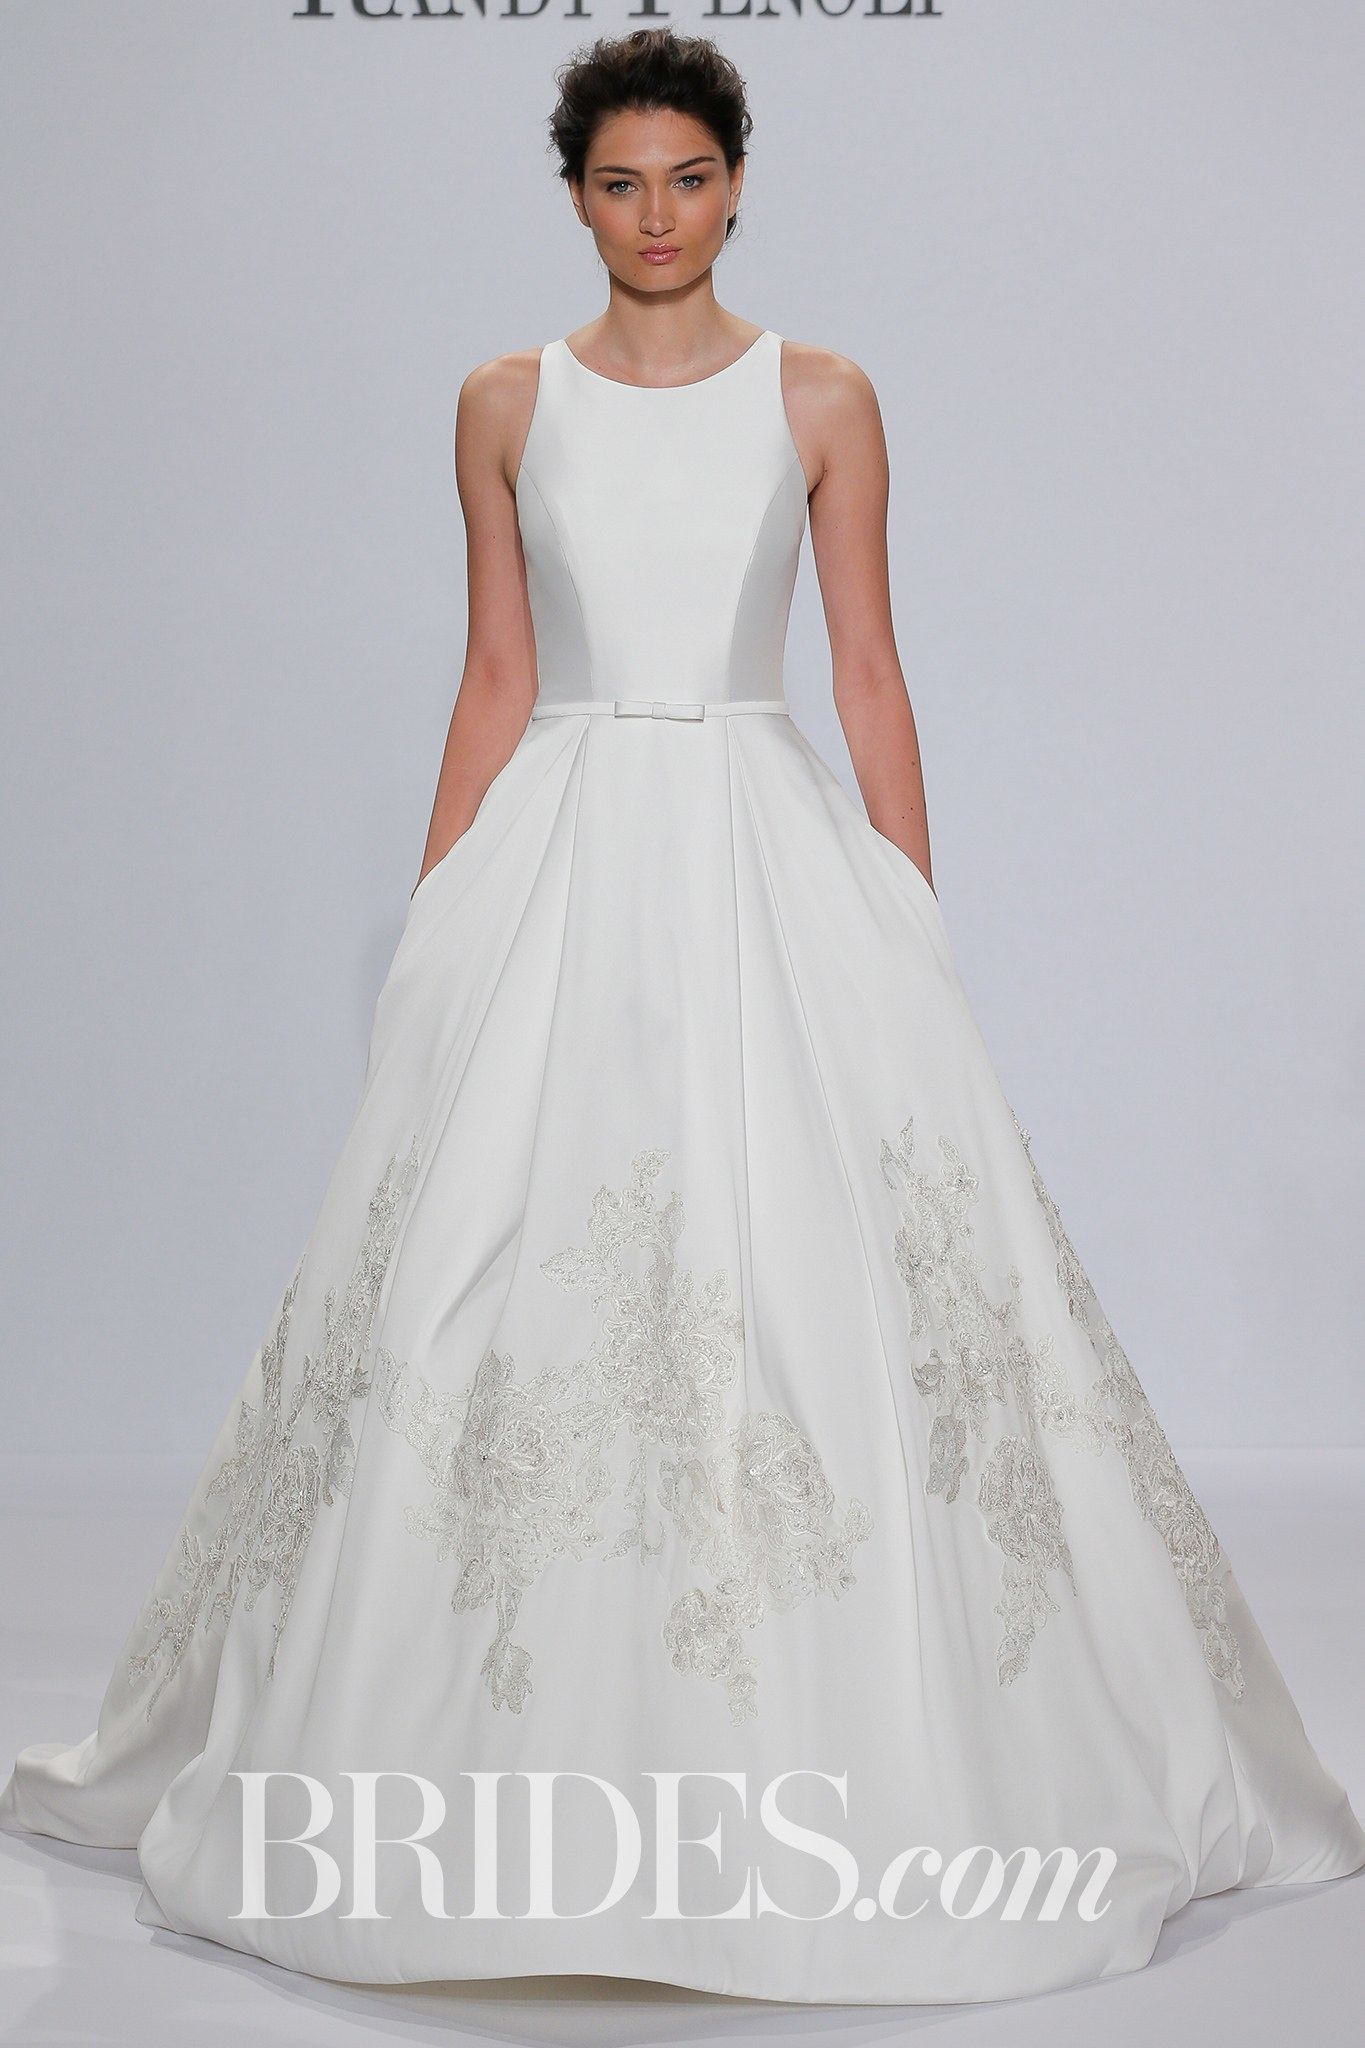 to try on many more wedding dresses from our bridal designer Willowby by Watters, Essence of Australia and Justin Alexander